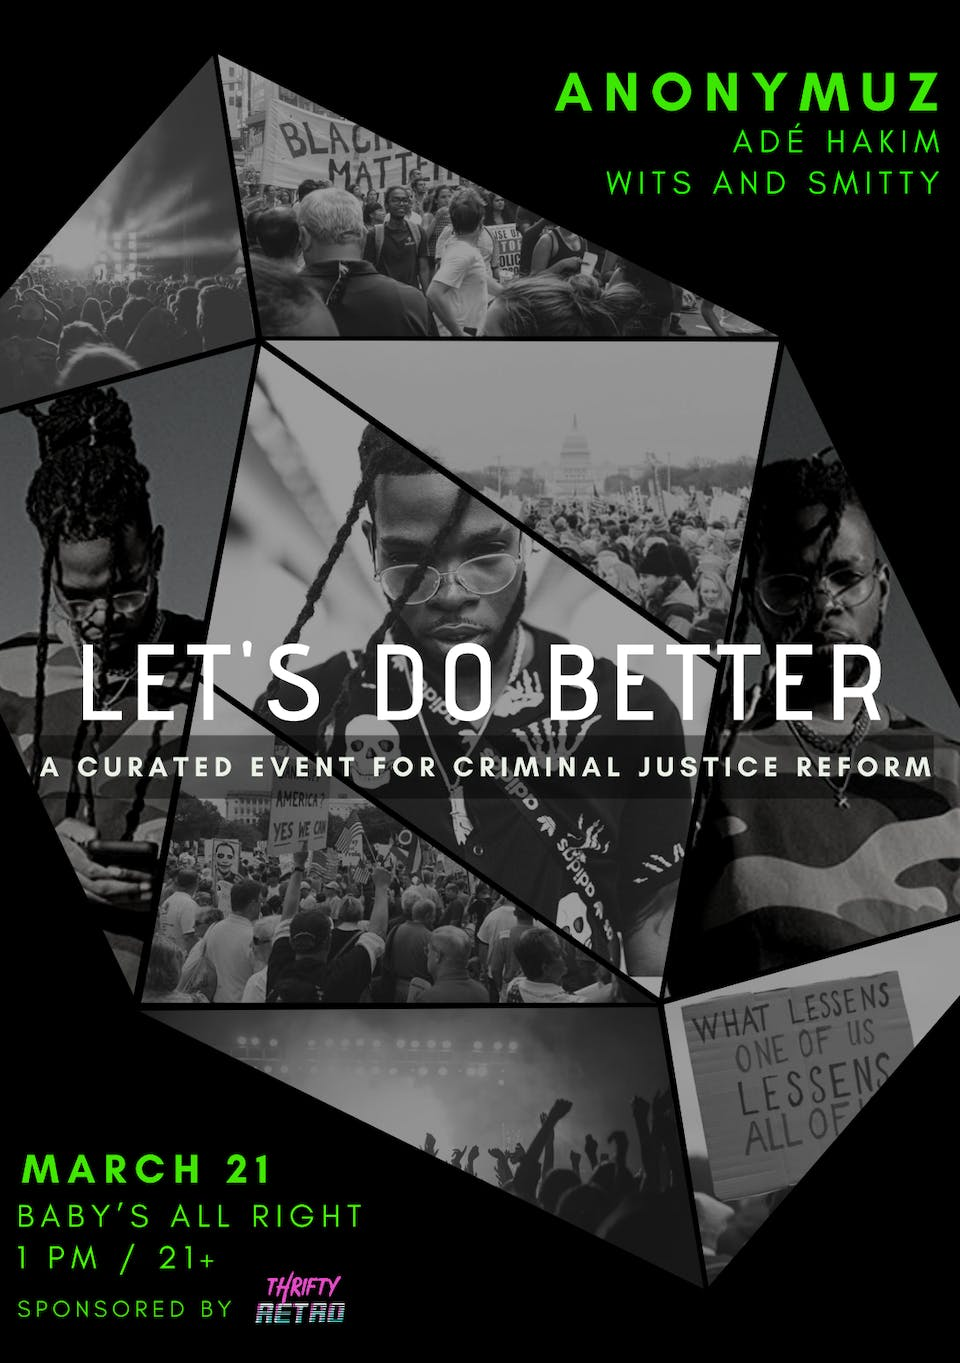 LET'S DO BETTER ft. Anonymuz with Adé Hakim, witS & Smitty